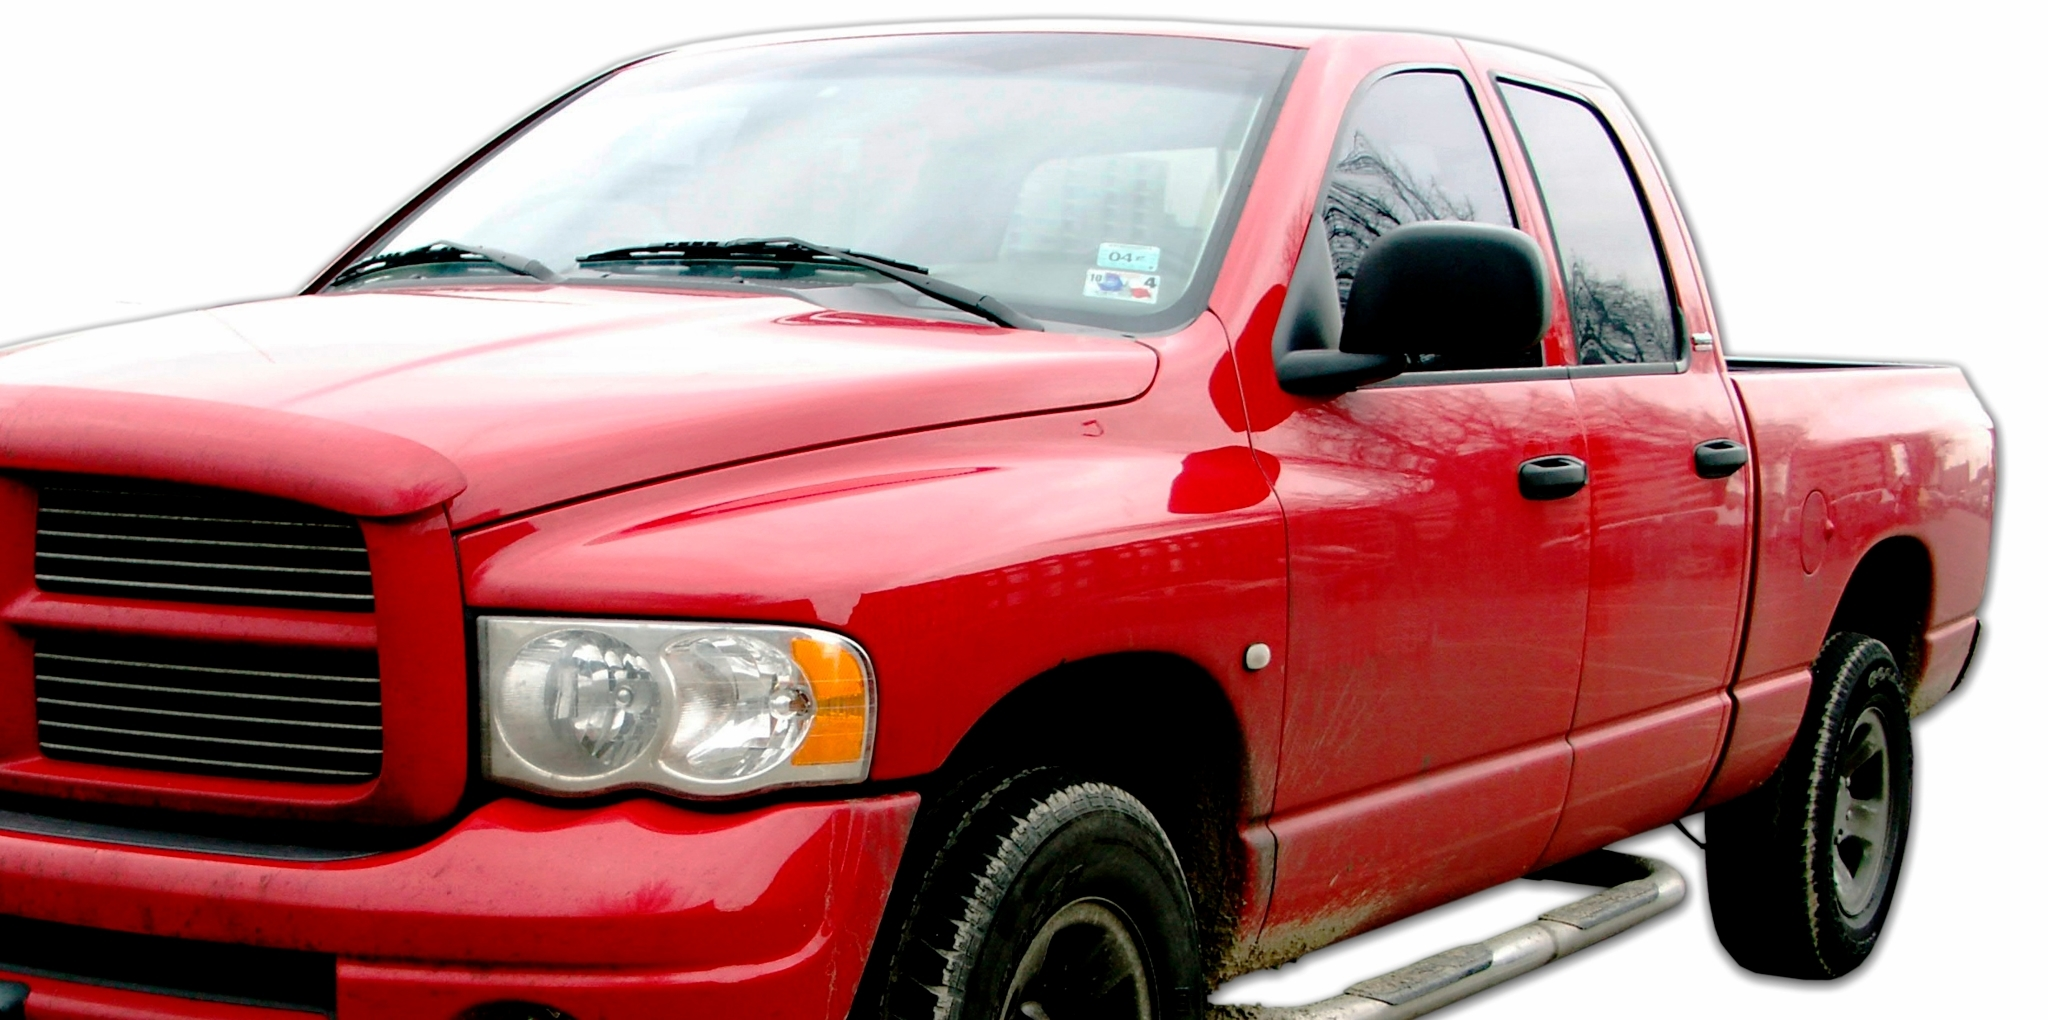 Hi-Tech Paint & Collision Ltd in Medicine Hat: Red Truck fixed